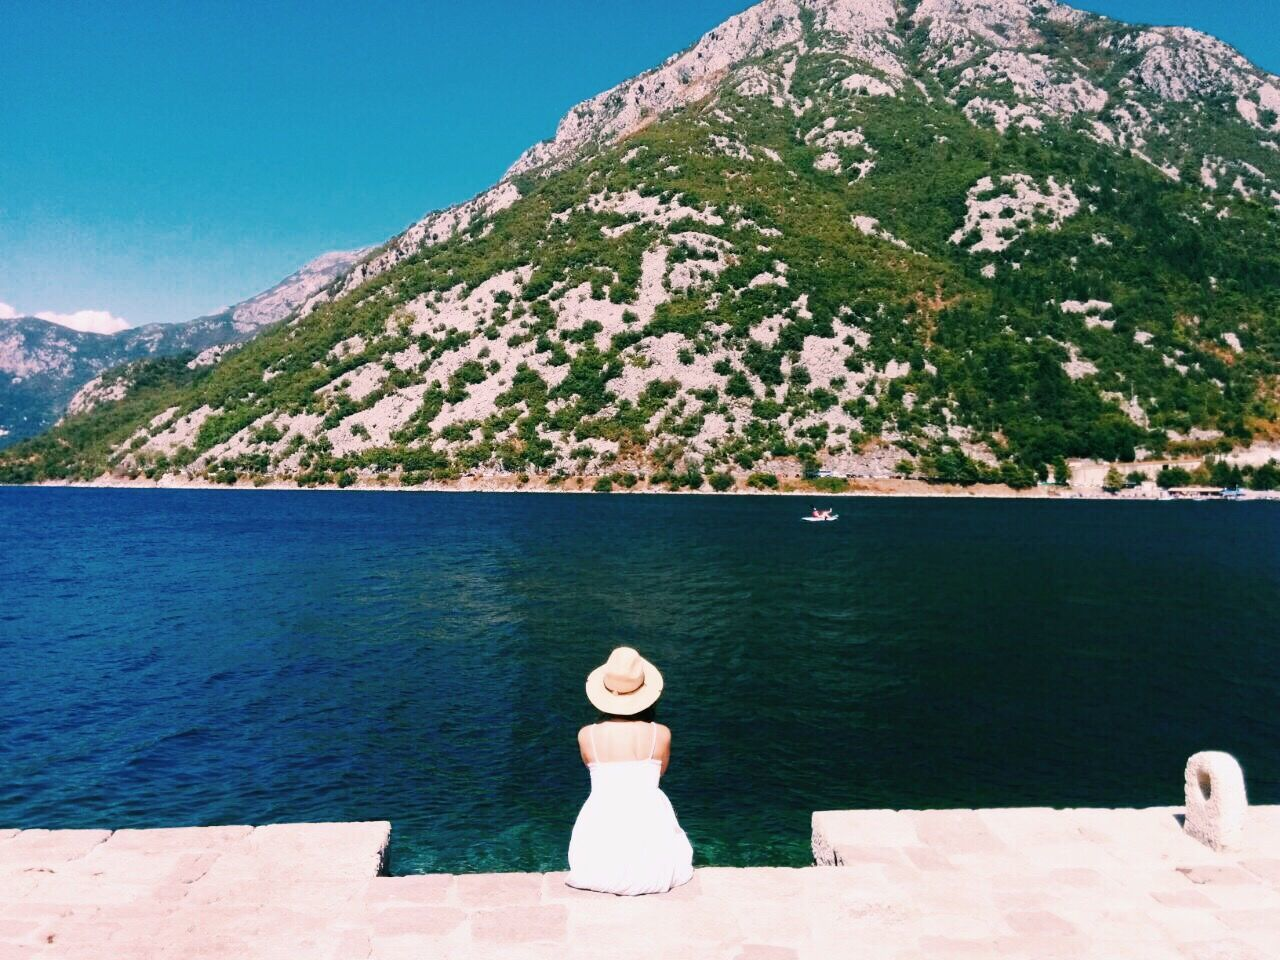 Summer Day Mountain Nature Water Beauty In Nature Sky Girl Live For The Story The Great Outdoors - 2017 EyeEm Awards Aroundtheworld Treveling Live For The Story